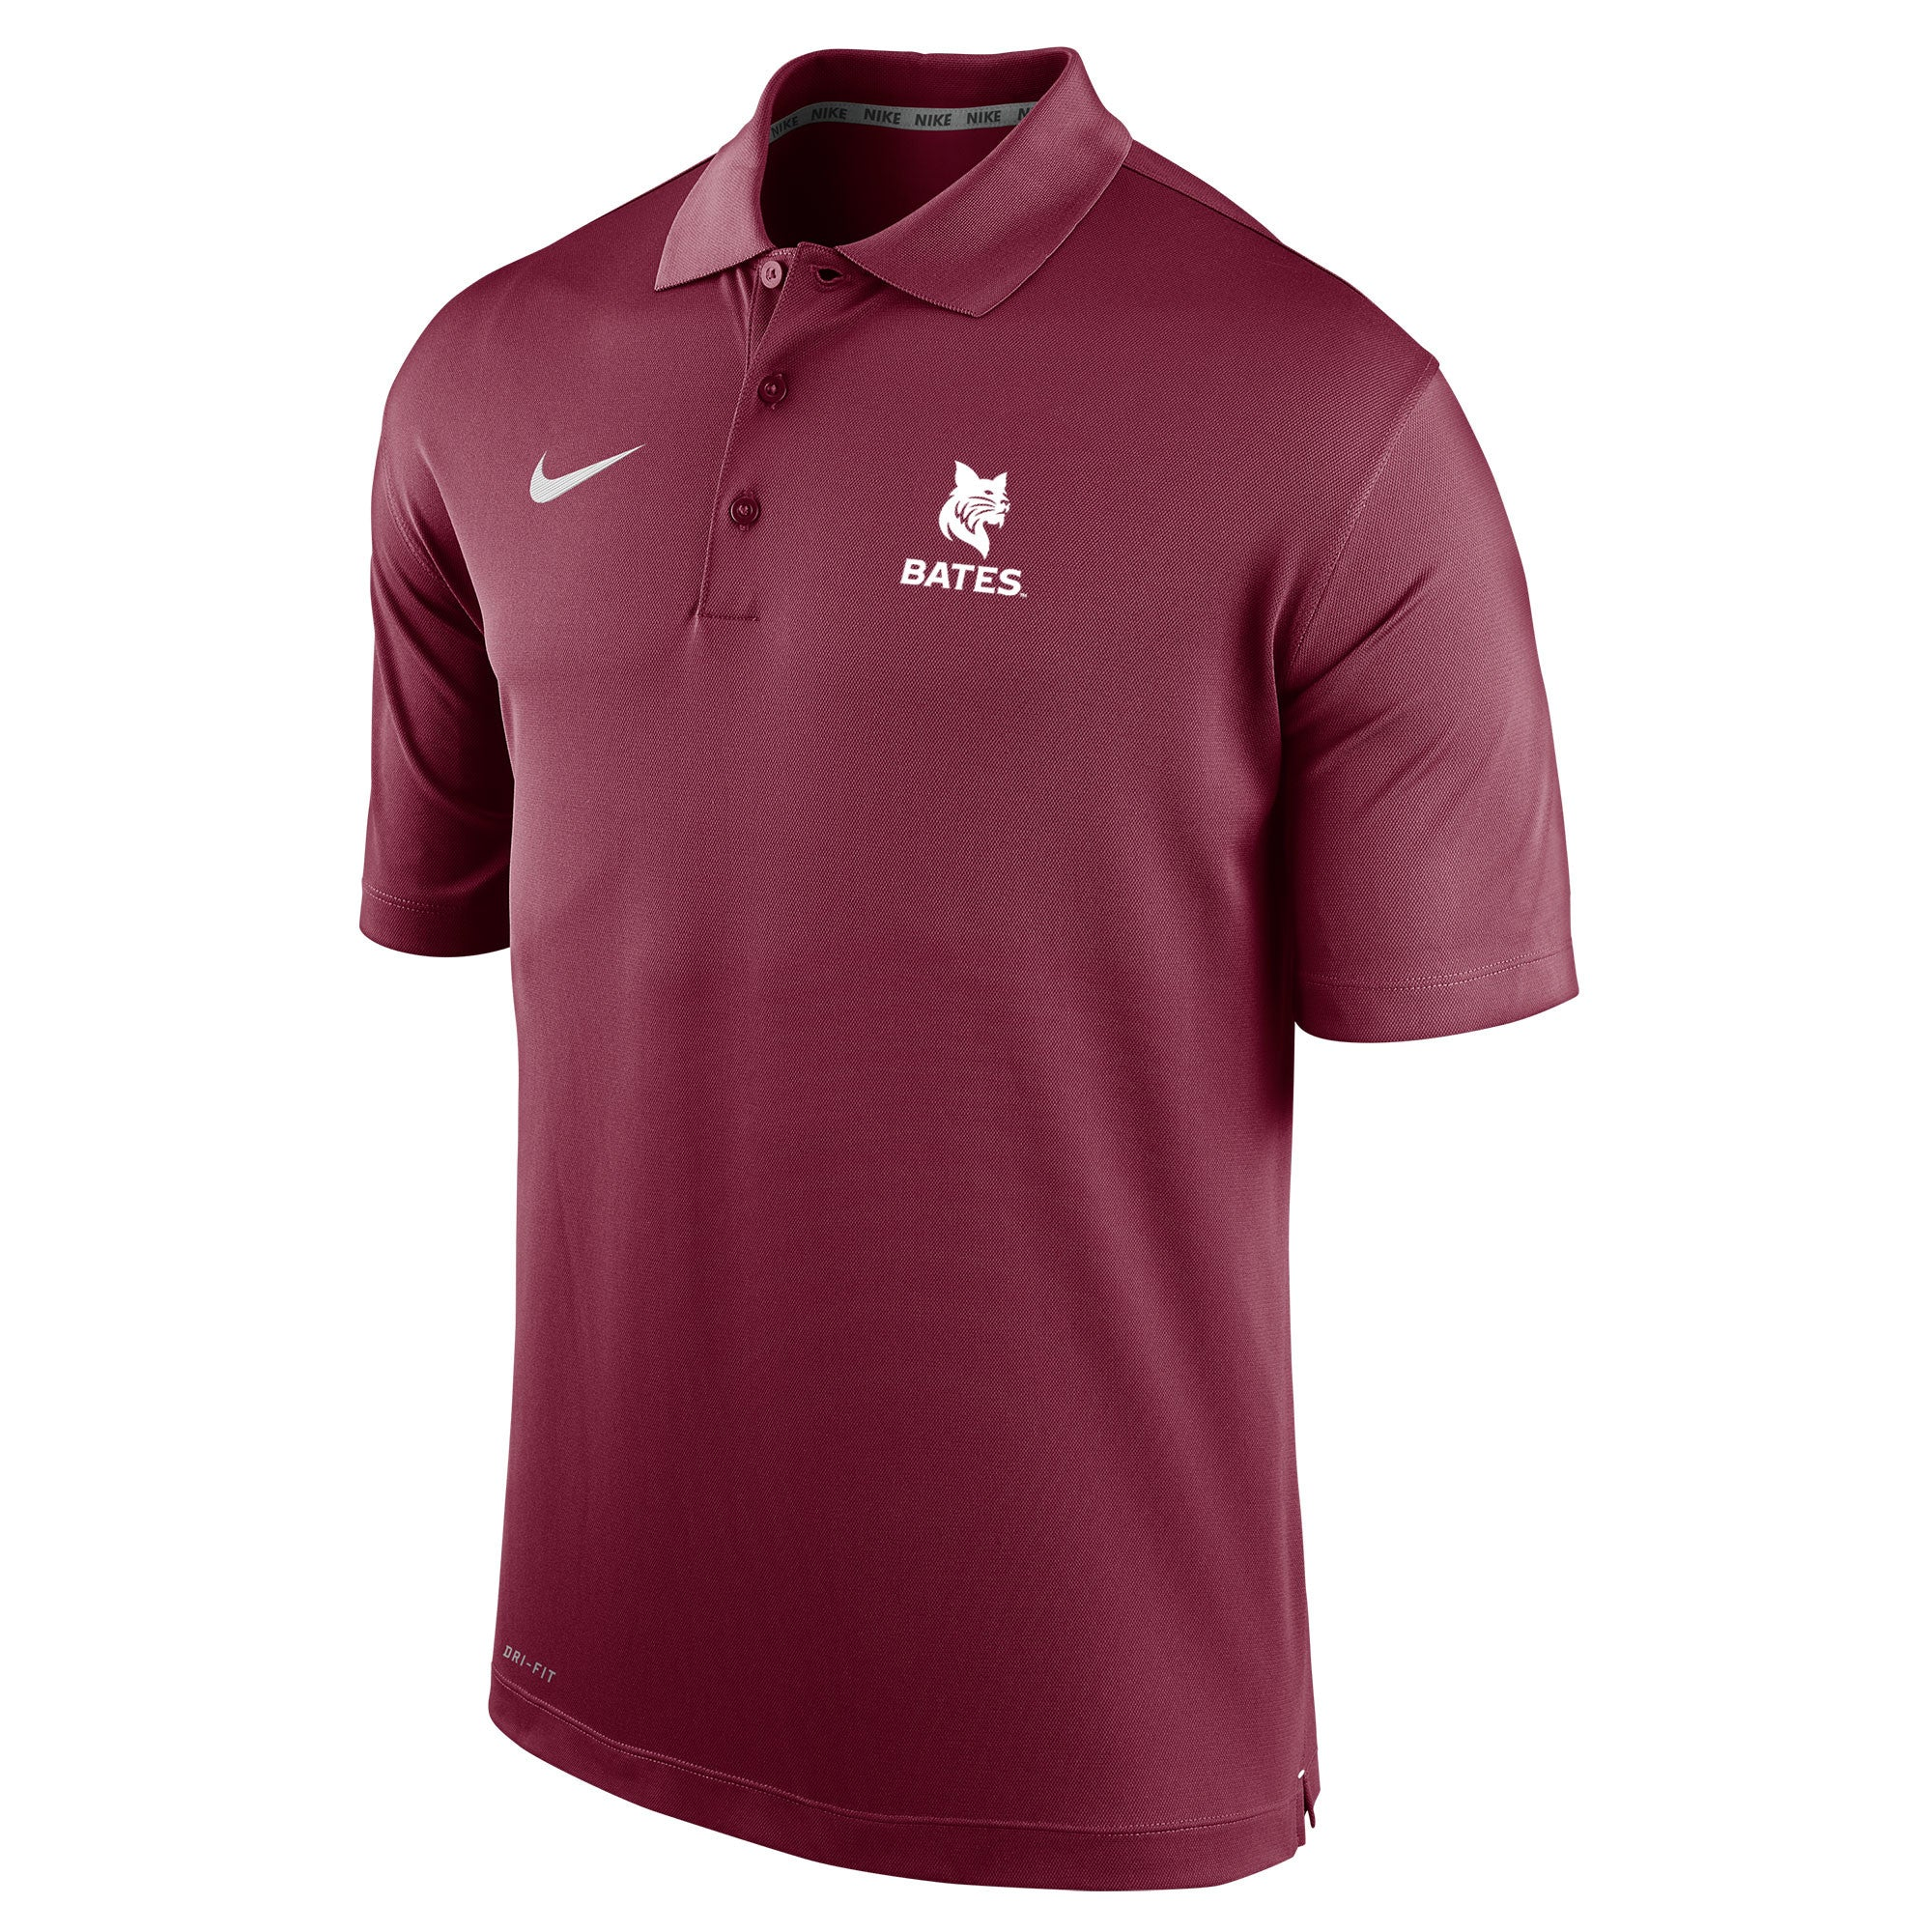 men 39 s nike performance polo shirt with embroidery bates